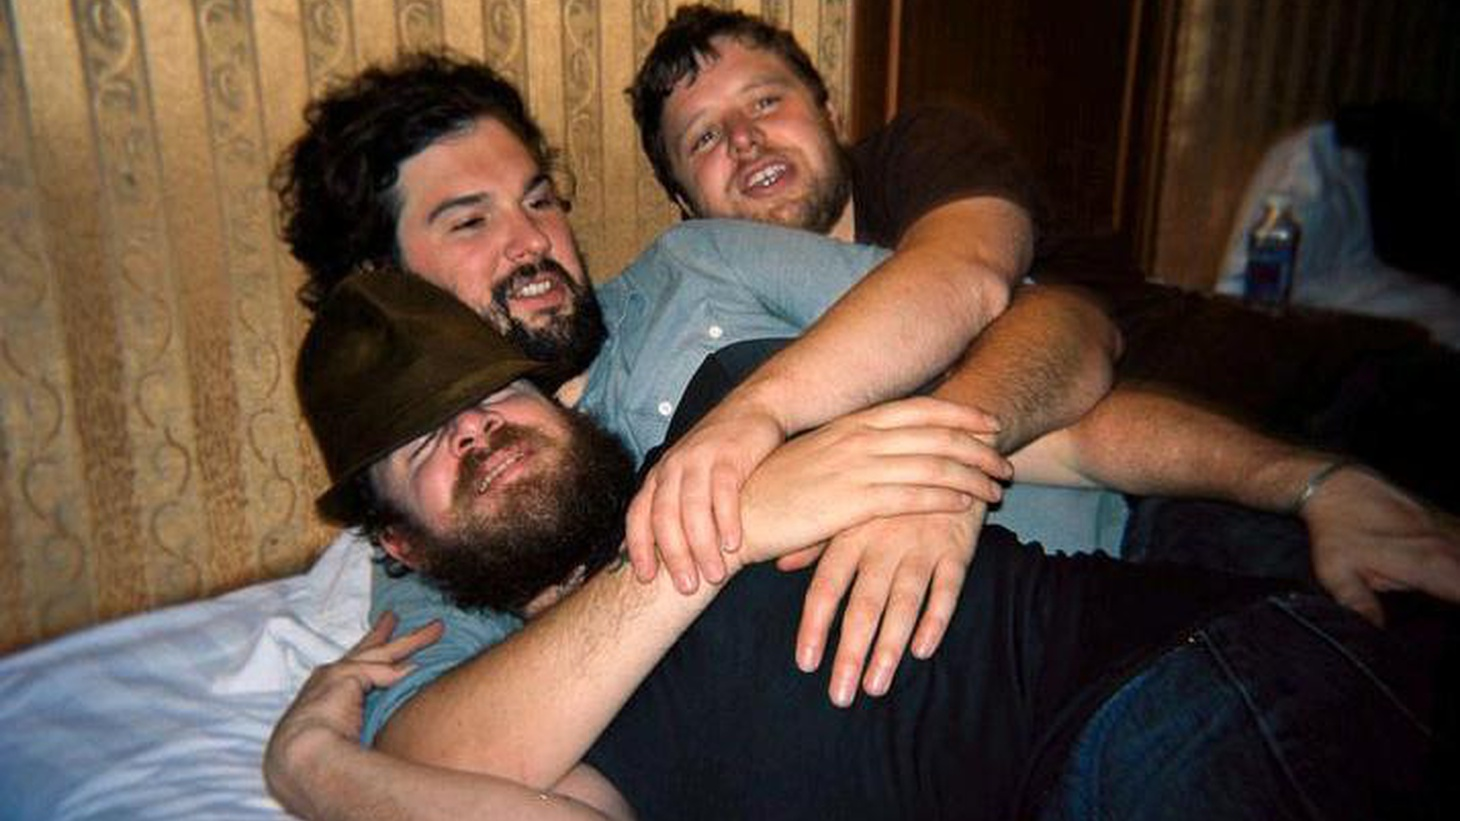 """The three members of The Cave Singers all started out in rock bands, including Seattle's beloved Pretty Girls Make Graves, but their first two recordings together were acoustic endeavors. Their third release, No Witch, begins their transition into a more electric sound. Today's Top Tune is somewhere in the middle. It's """"Swim Club."""""""